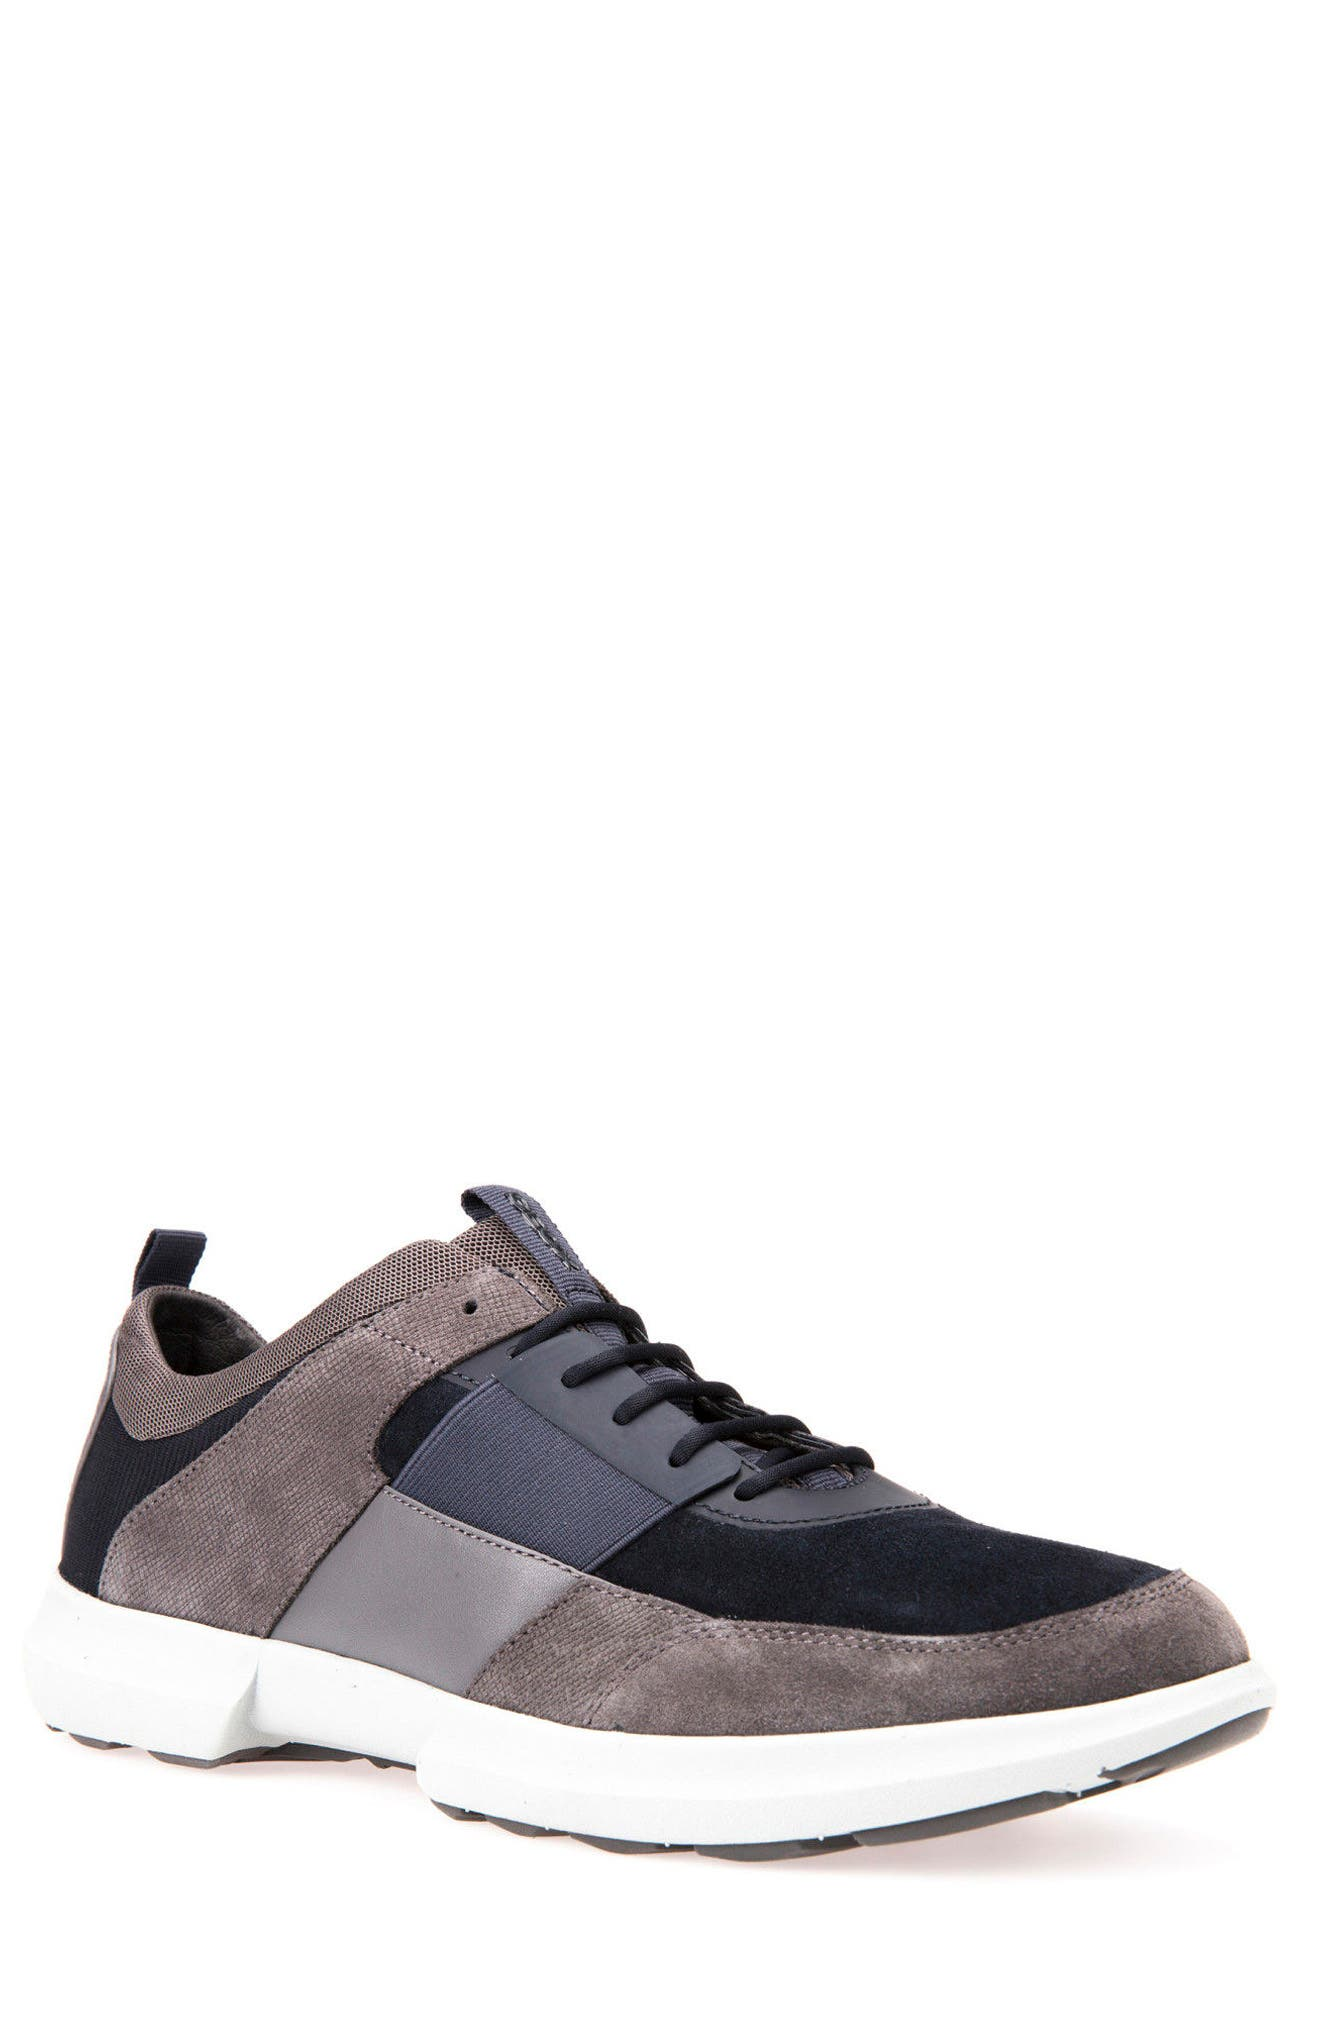 Traccia 5 Sneaker,                             Main thumbnail 1, color,                             Navy/ Anthracite